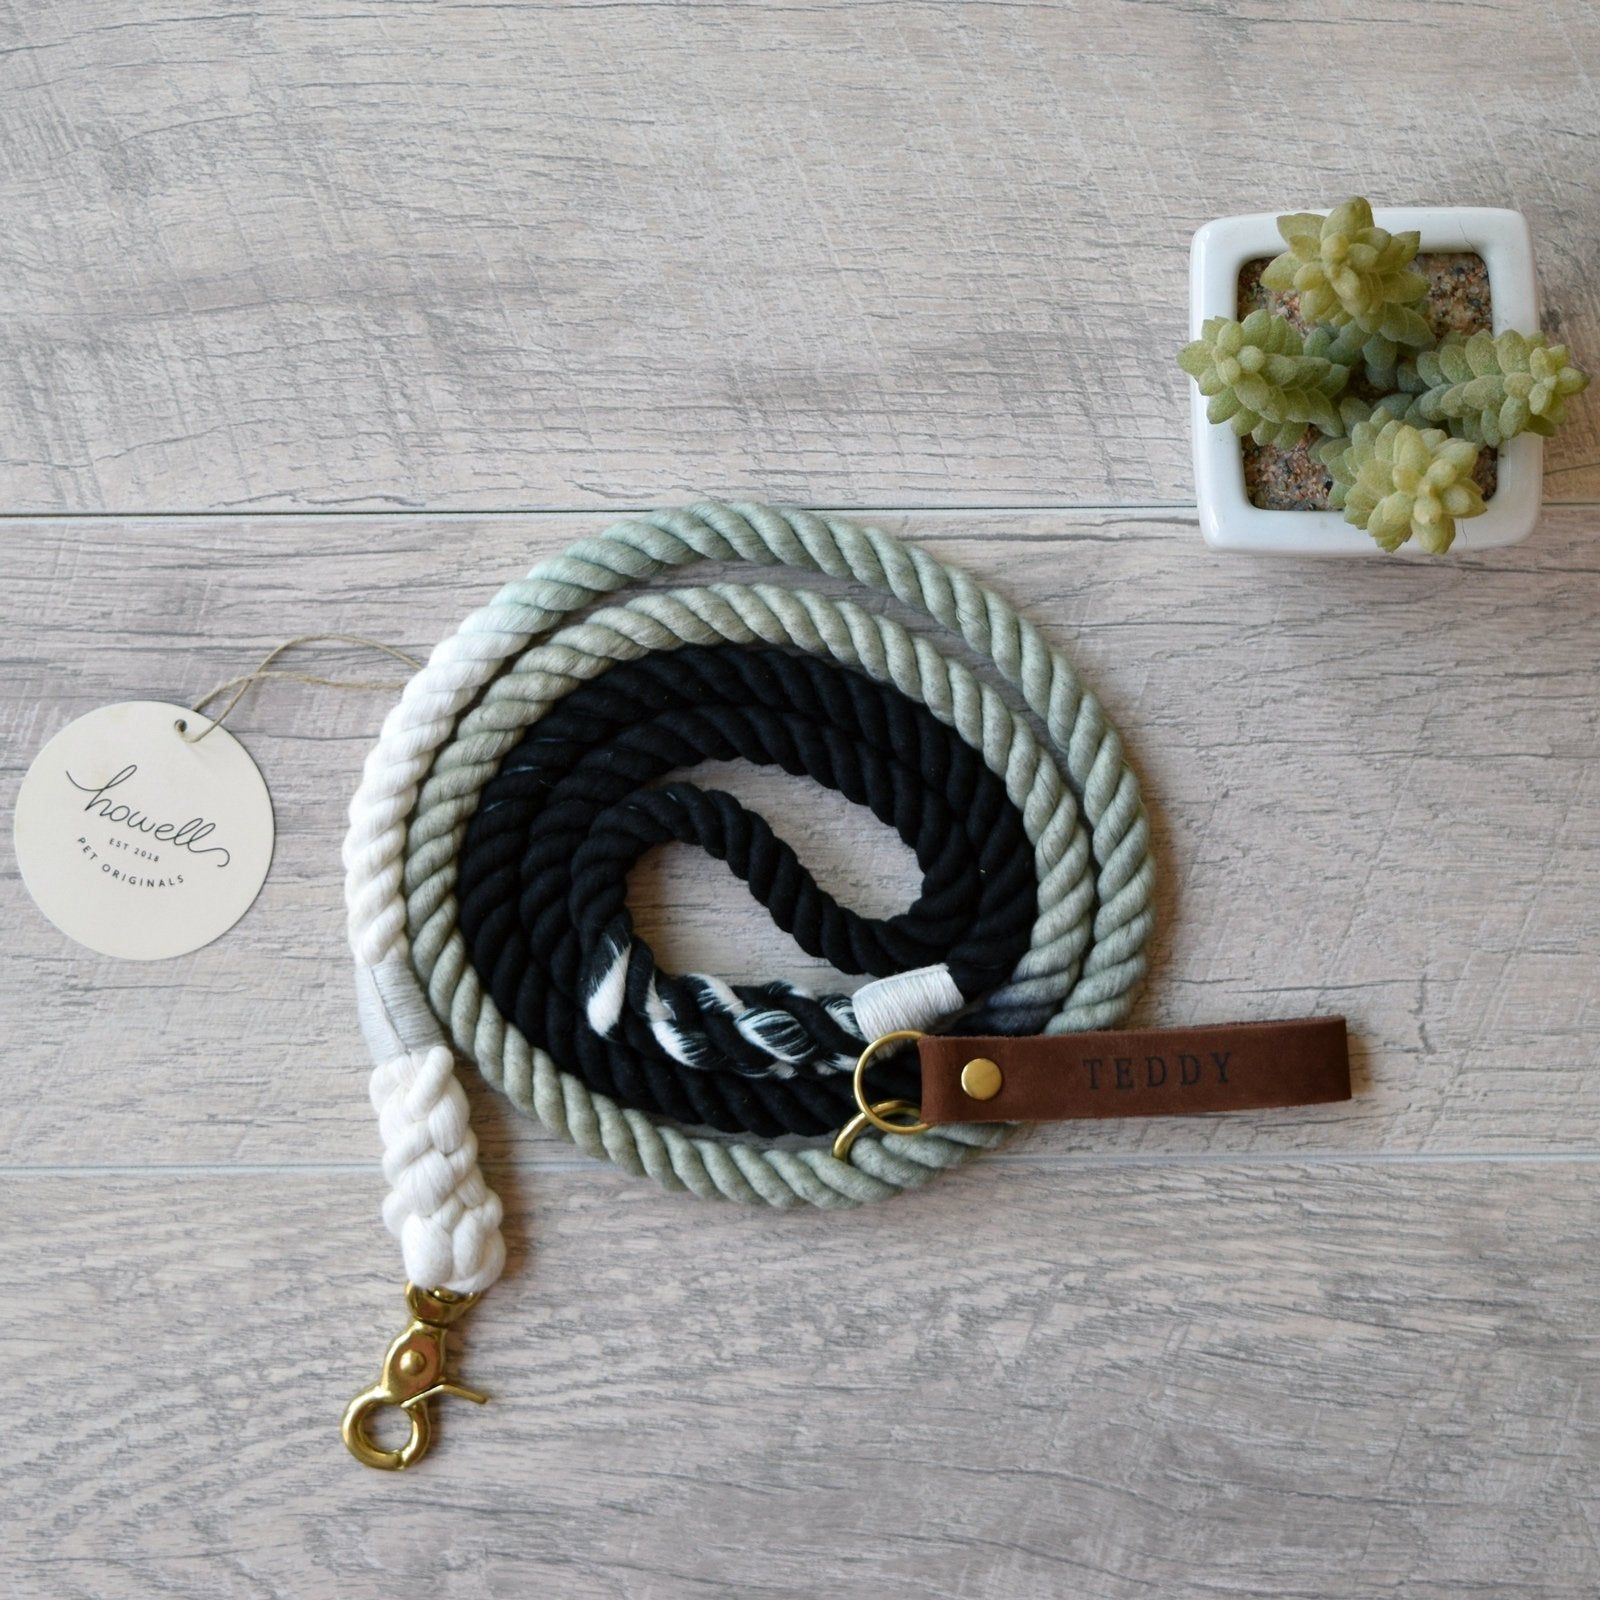 Black Ombre Cotton Rope Dog Leash Black Ombre Dyed Cotton Dog Leash Nautical Style Rope Dog Leash and Dog Lead